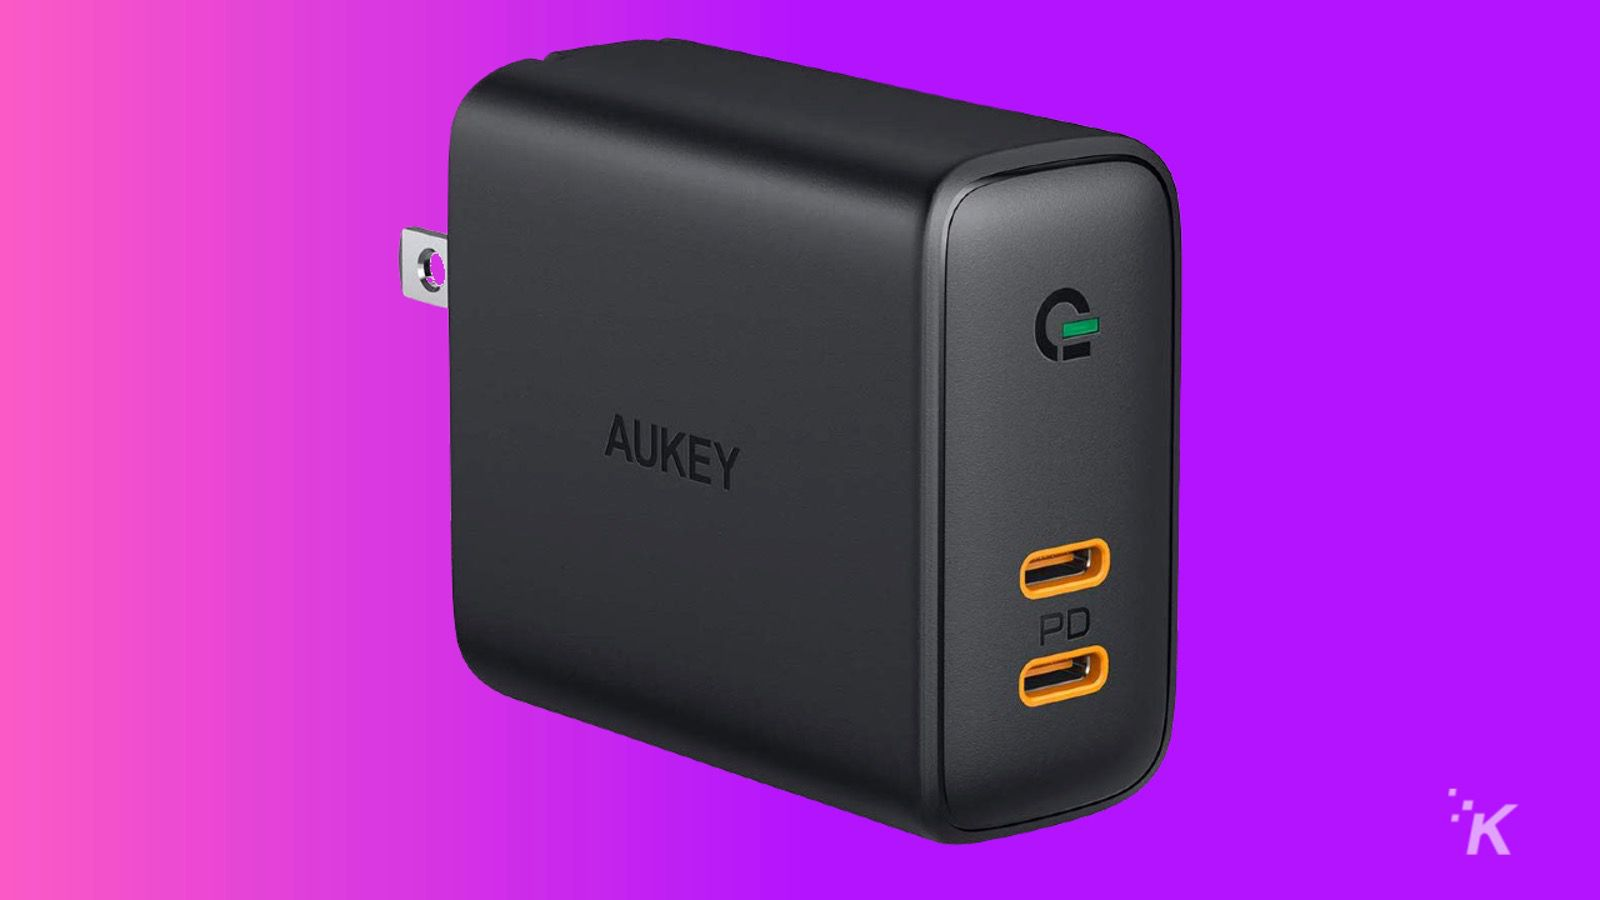 aukey usb-c wall charger